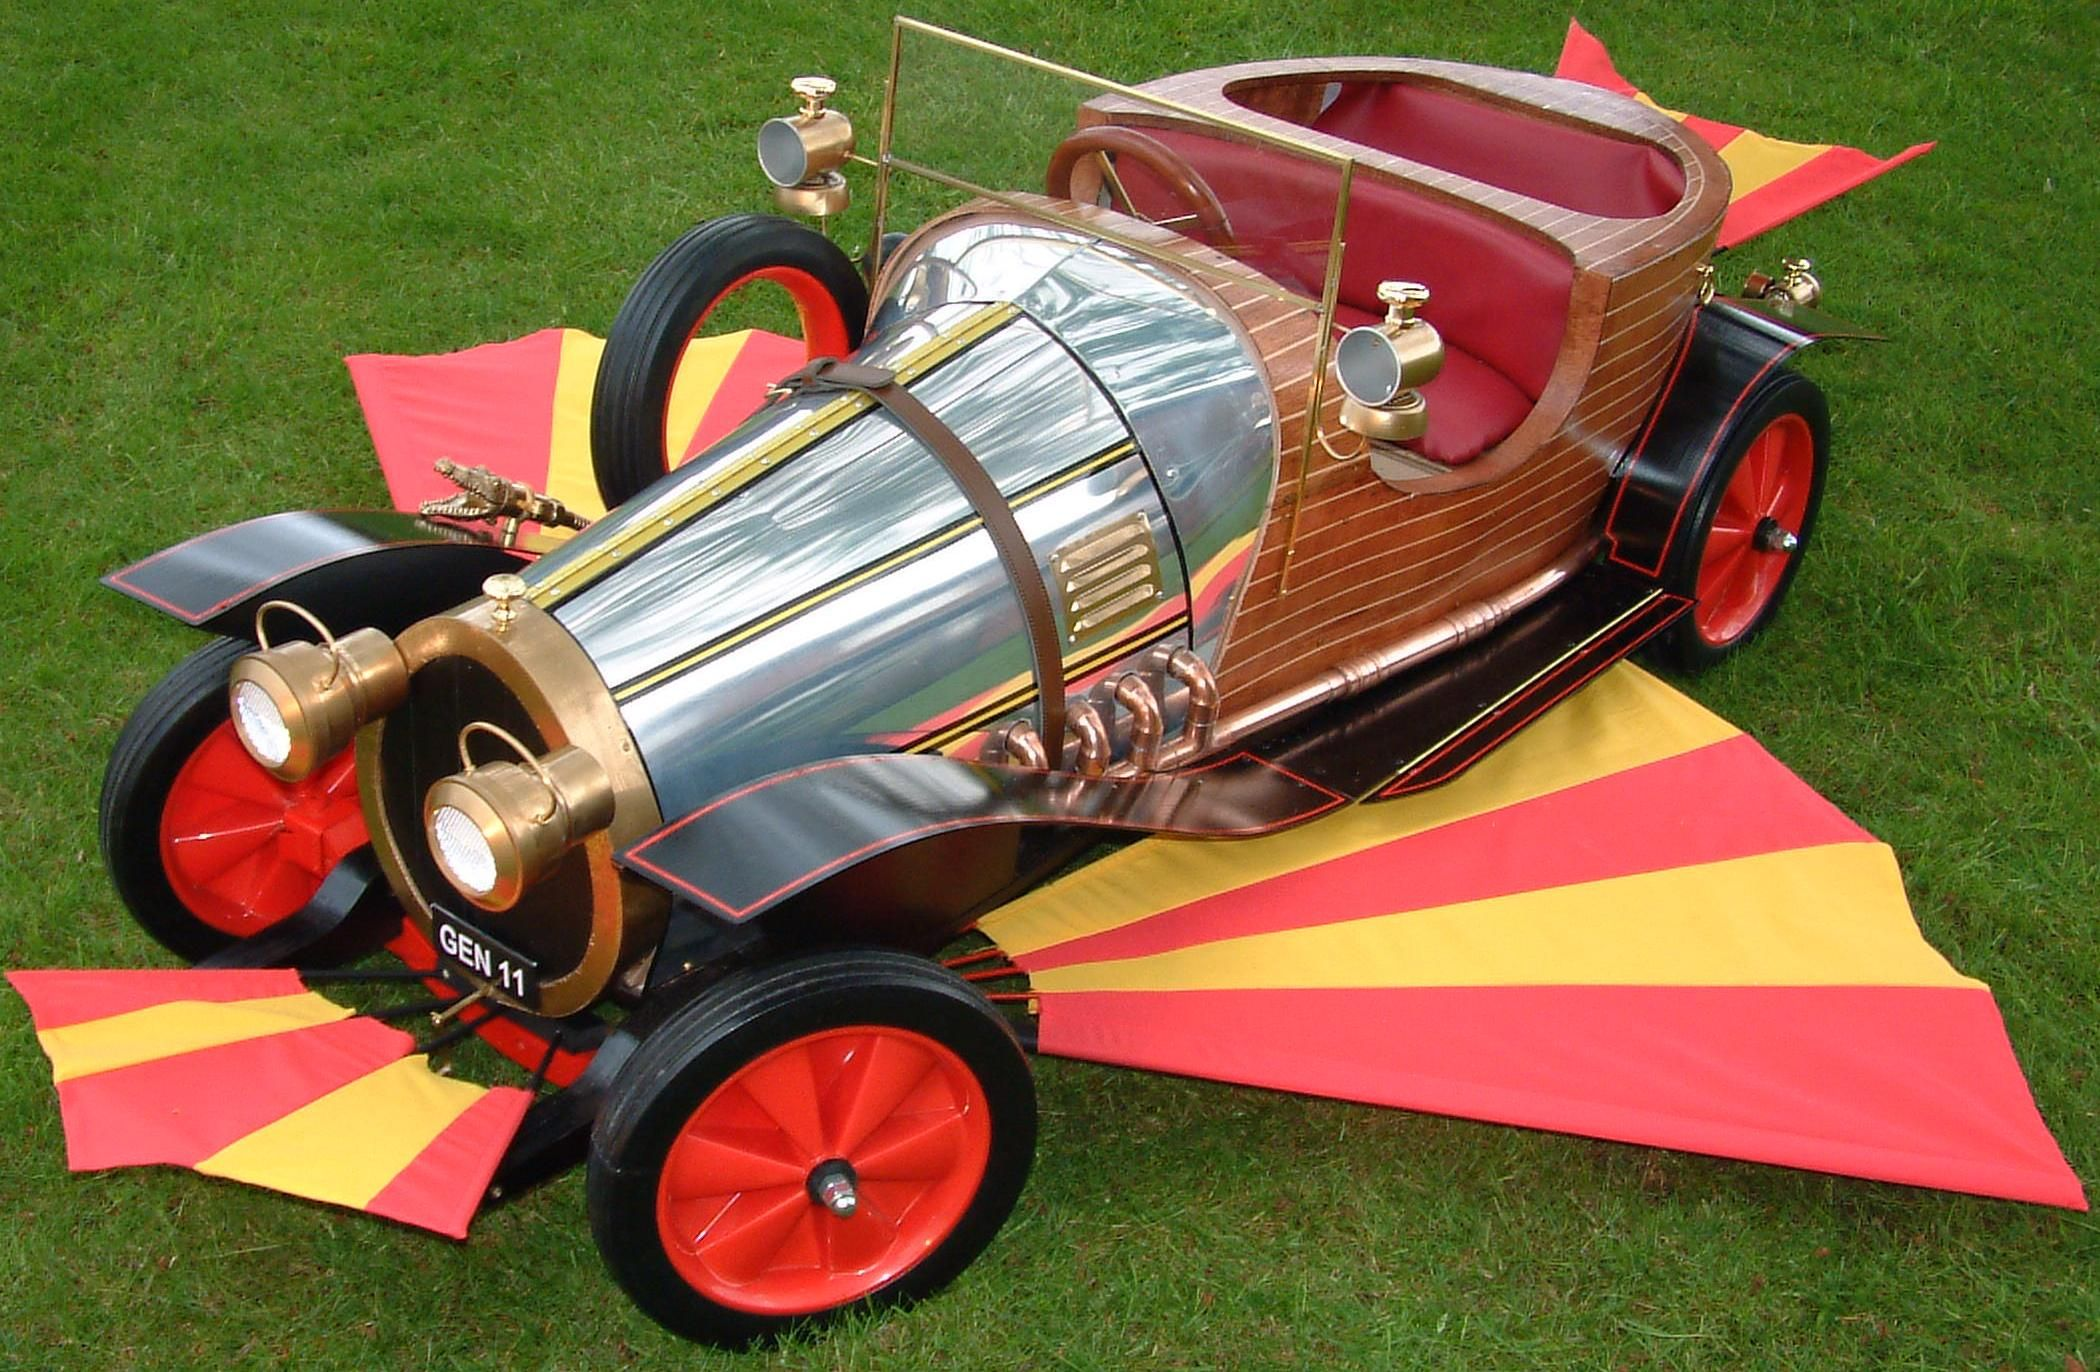 The Immense Challenge Of Writing A Sequel To Chitty Chitty Bang - Famous movie cars beautifully illustrated